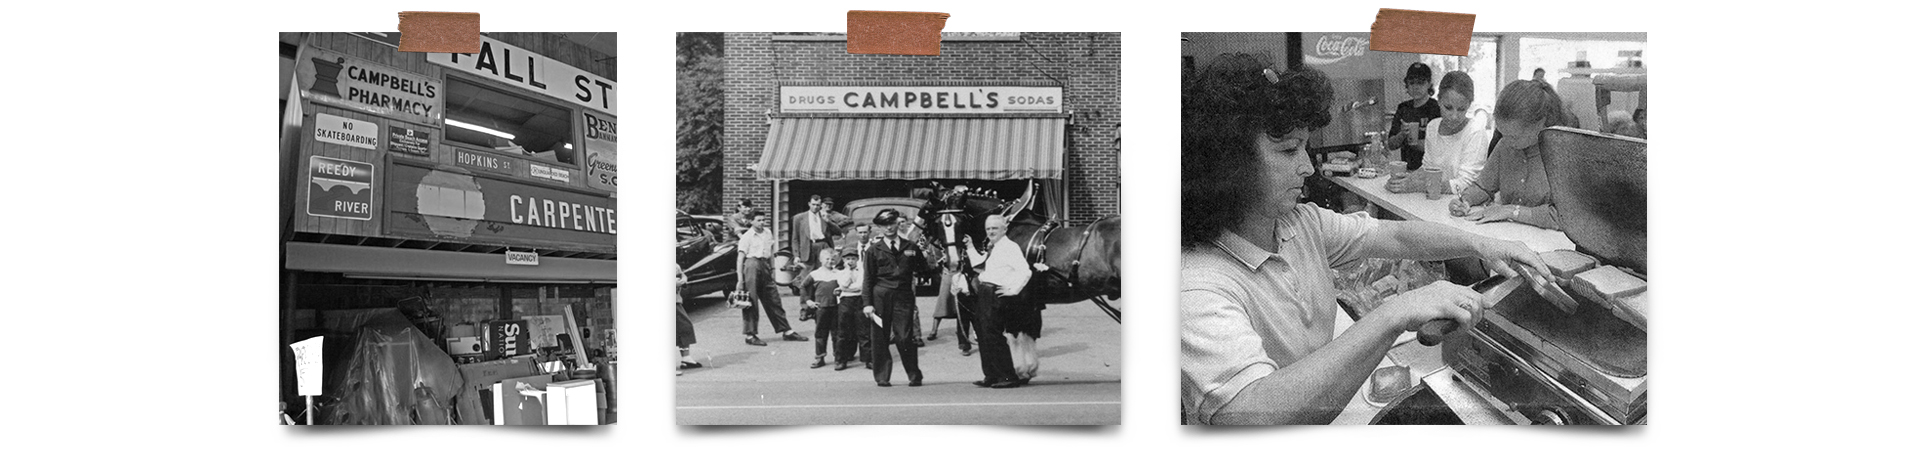 Historical moodboard and inspiration for The Common Cure restaurant branding in Greenville South Carolina.